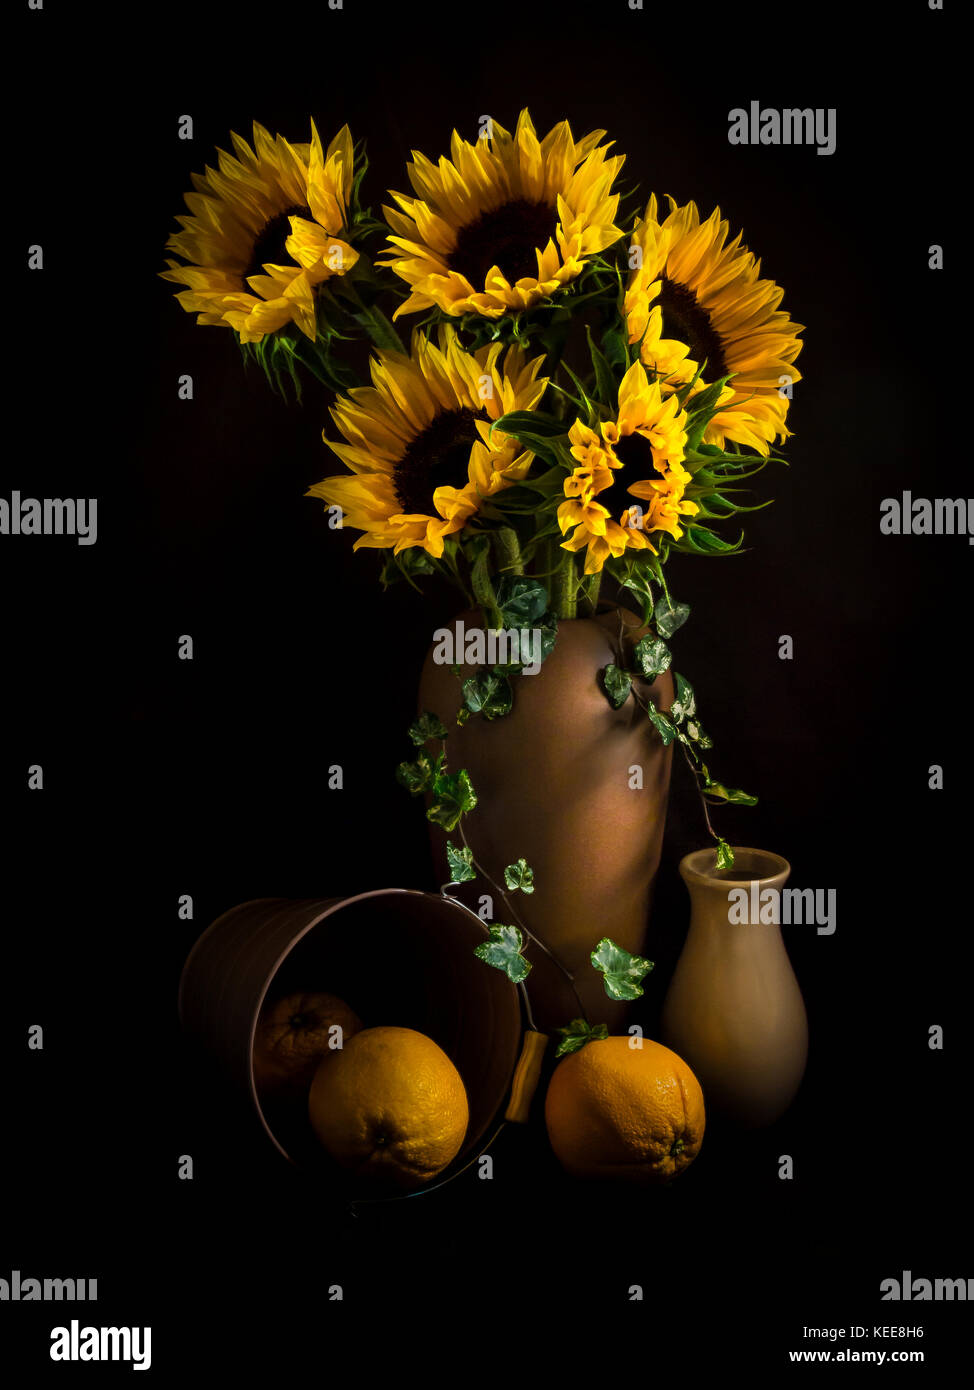 TRADITIONAL STILL LIFE Sunflowers And Oranges